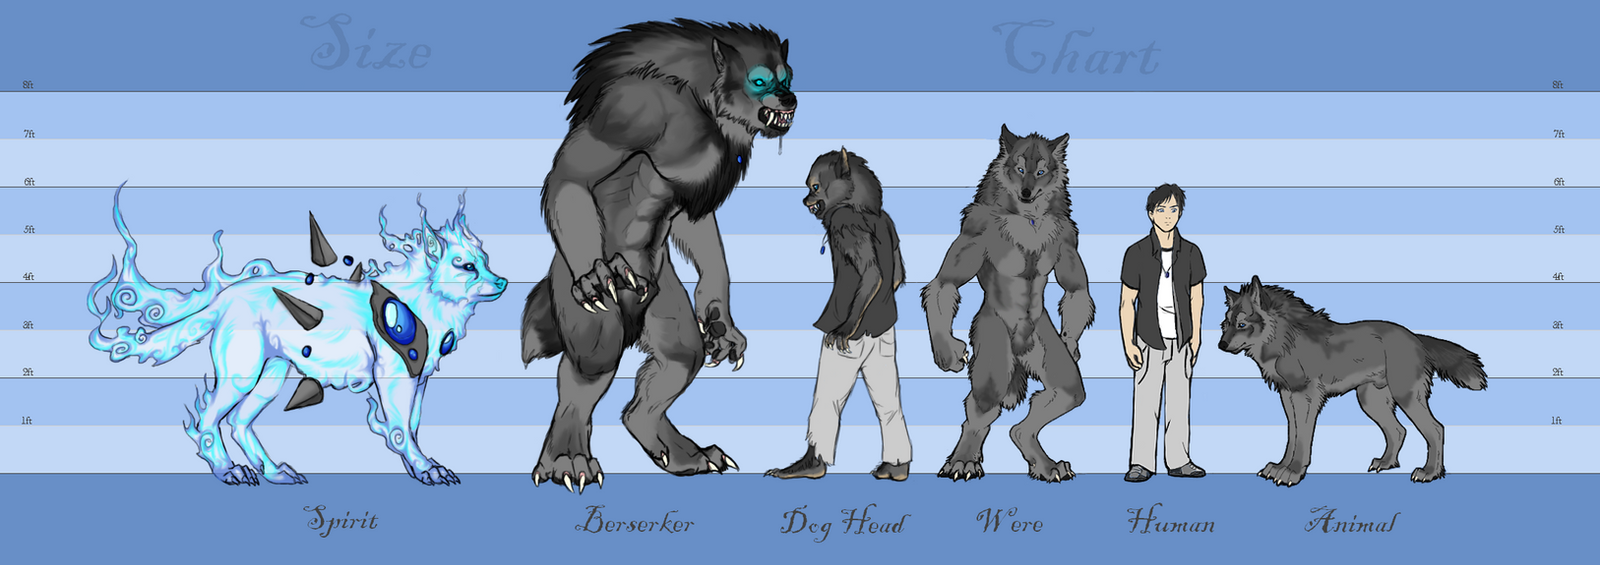 Silver and Bone Size Chart by TeknicolorTiger on DeviantArt